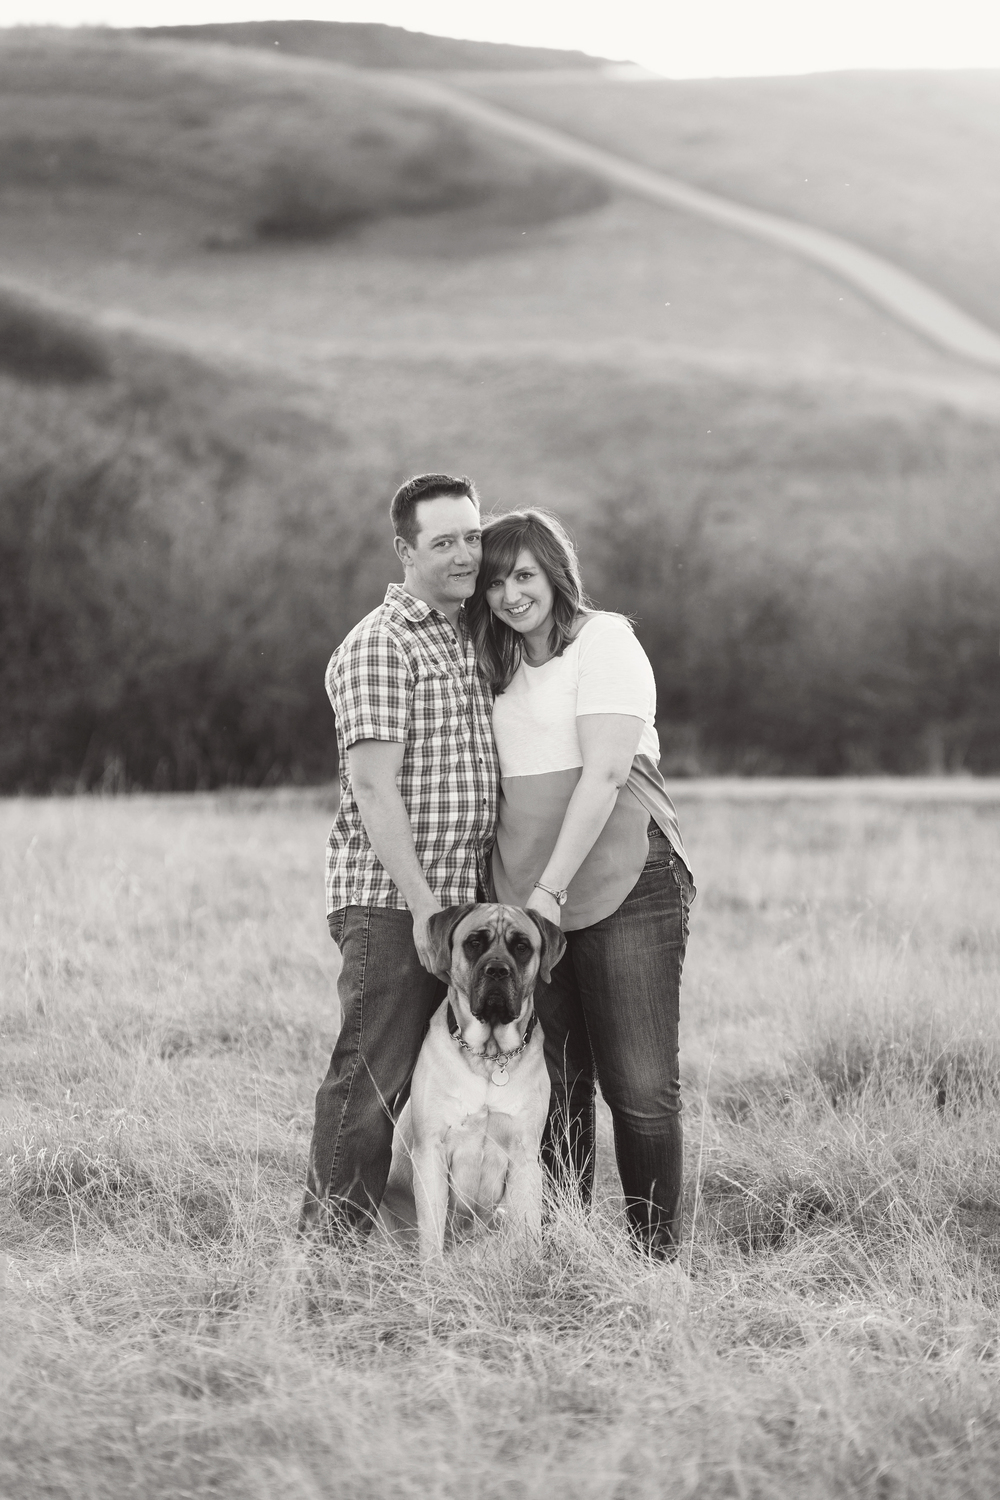 LR_engagement_002_bw.jpg